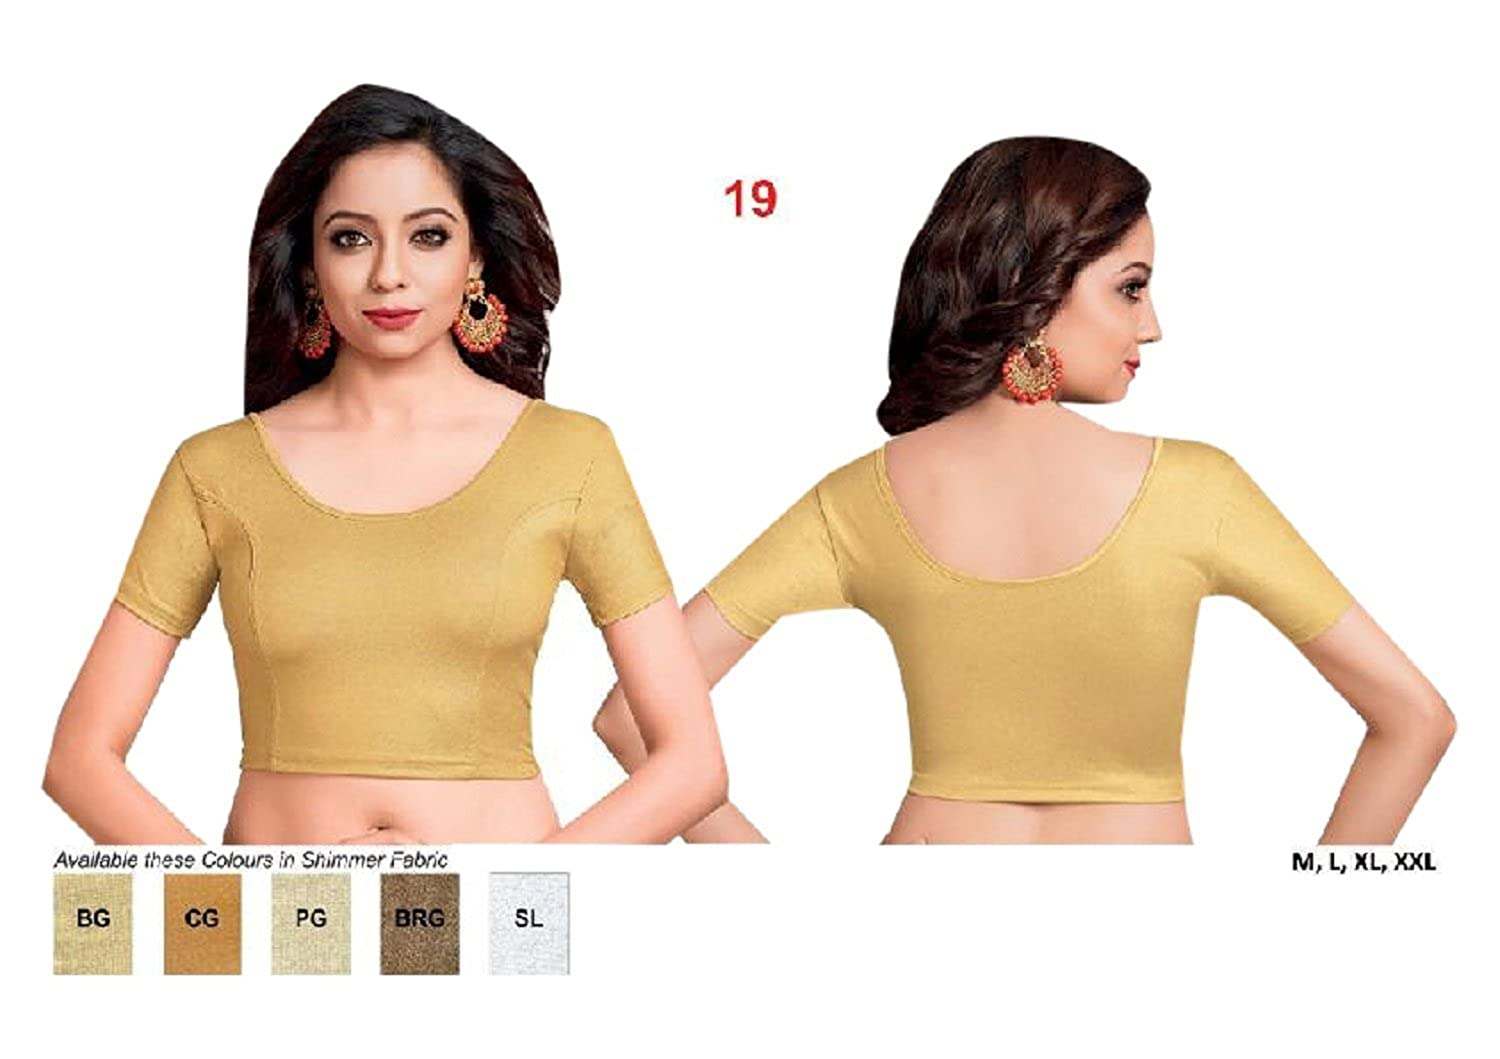 790245607c2b0 Amazon.com  Golden Designer Crop Top Women Lycra Multicolor Stretchable  Blouse Ready Made Party Stitched Plus Size S